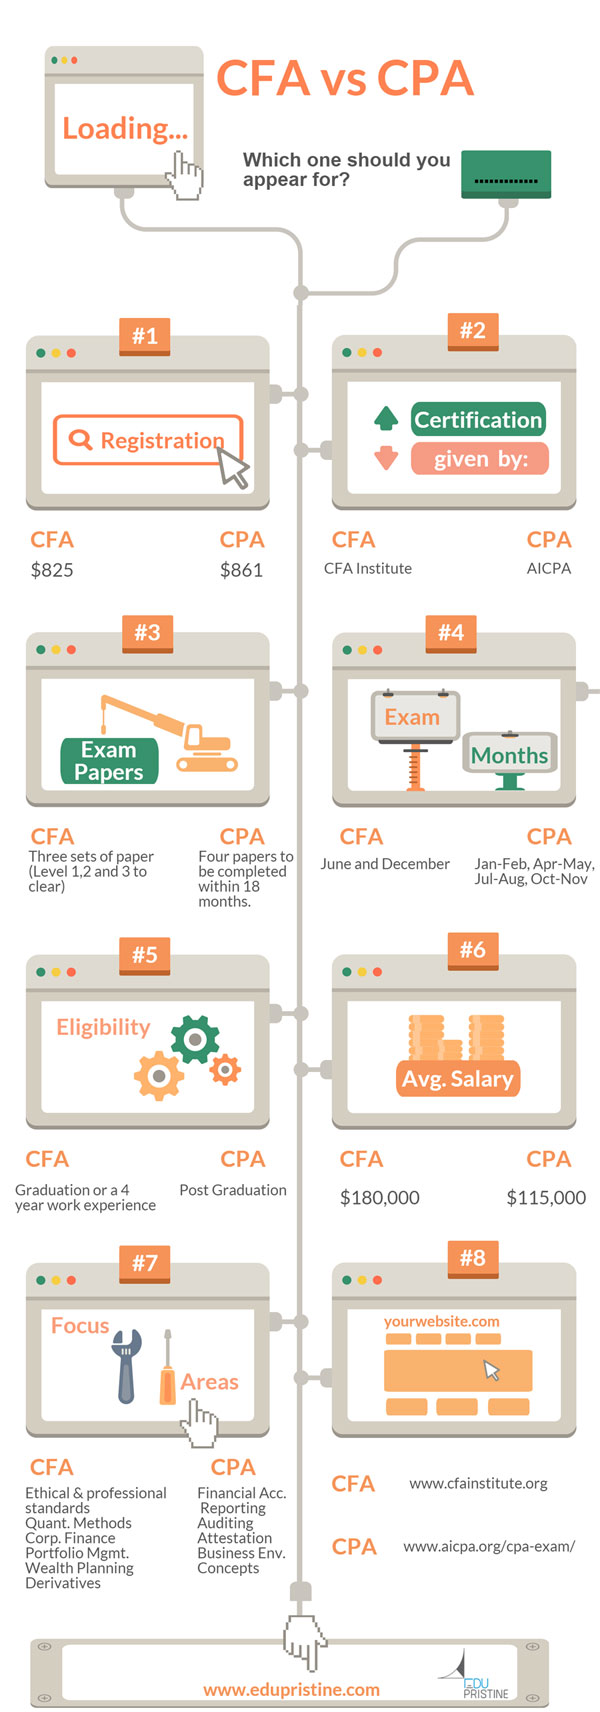 CFA<sup/>&reg; vs CPA infographic&#8221;/></p><h2> CFA<sup>&reg;</sup> Program vs CPA Program</h2><p></center></p><p>Both the exams, as tough and difficult they may be but the effort that you put in and the certifications are worth it. It changes your opinion in people's mind. You enjoy a goodwill that you never expected. Working hard is the key to success is something we all know but working hard in the field that you like is the key to a happy successful life where one enjoys what they are doing.In the end it's your call, CFA or CPA? Which would give you greater joy? Prepare well and all the best!</p><div class=